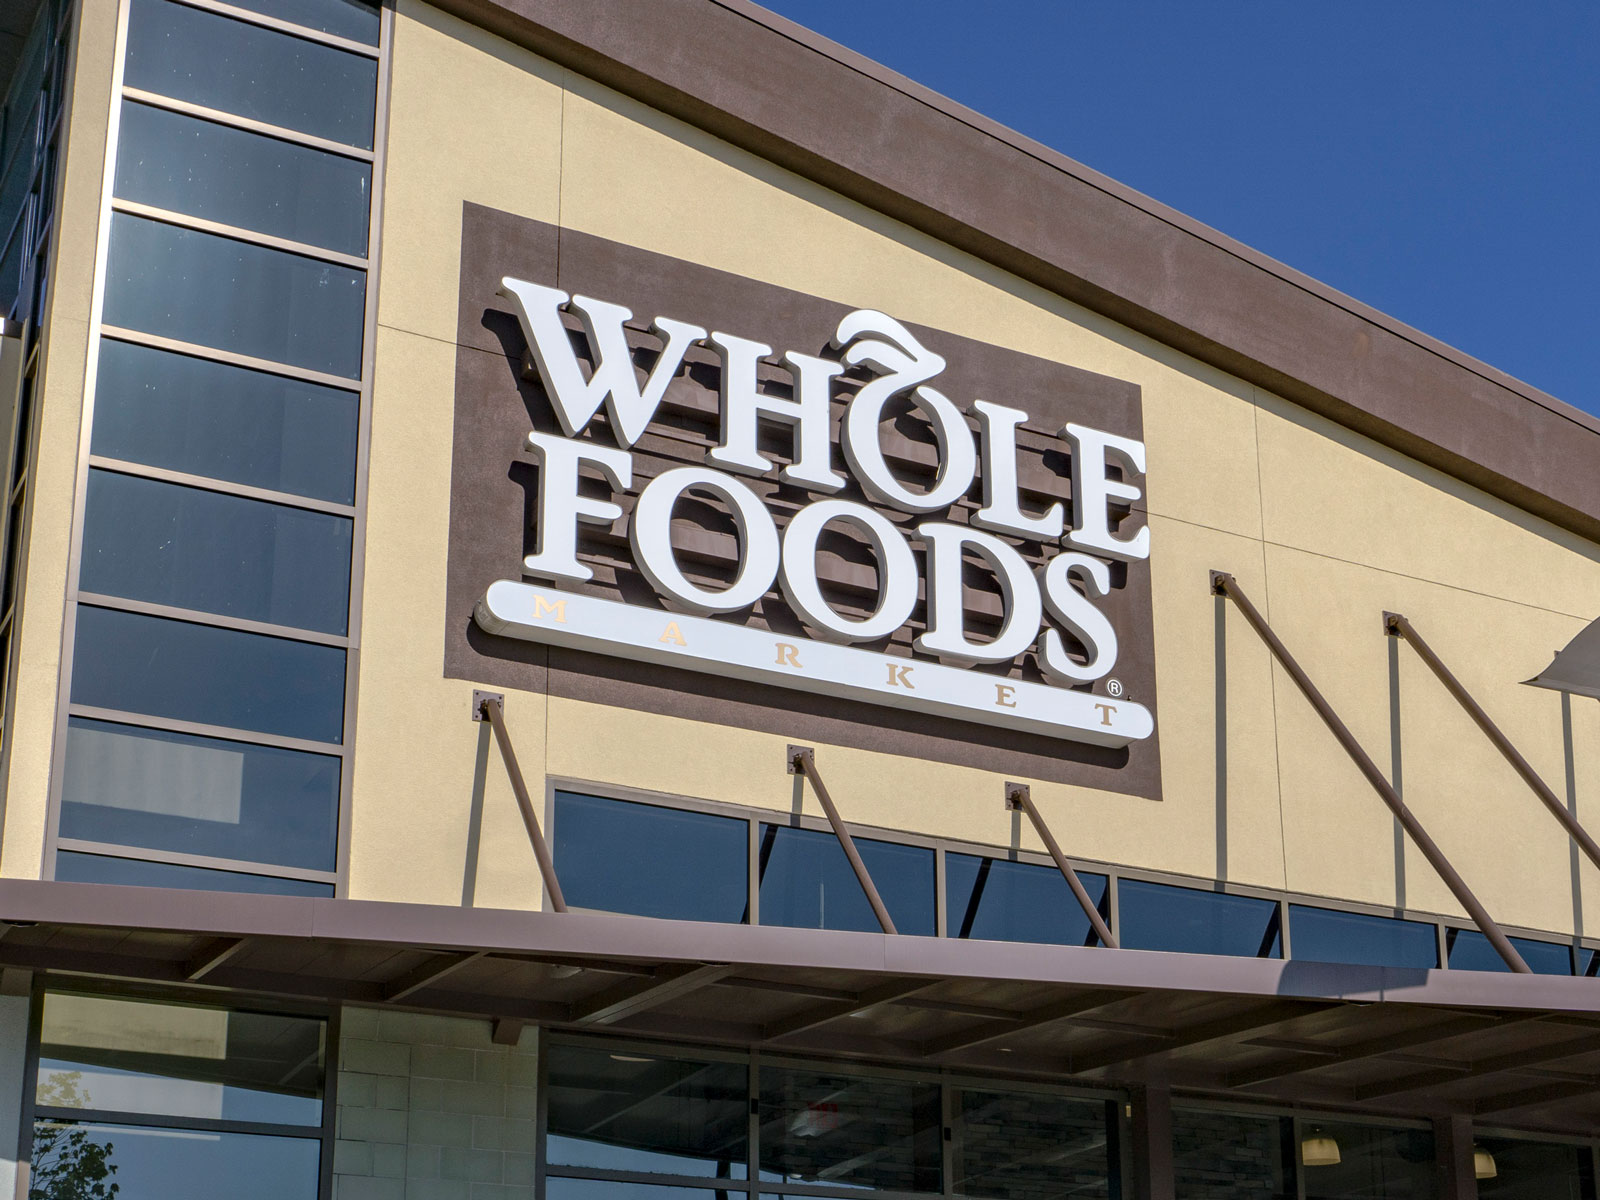 Whole Foods' Website Allows Customers to Search Products Based on Dietary Restrictions